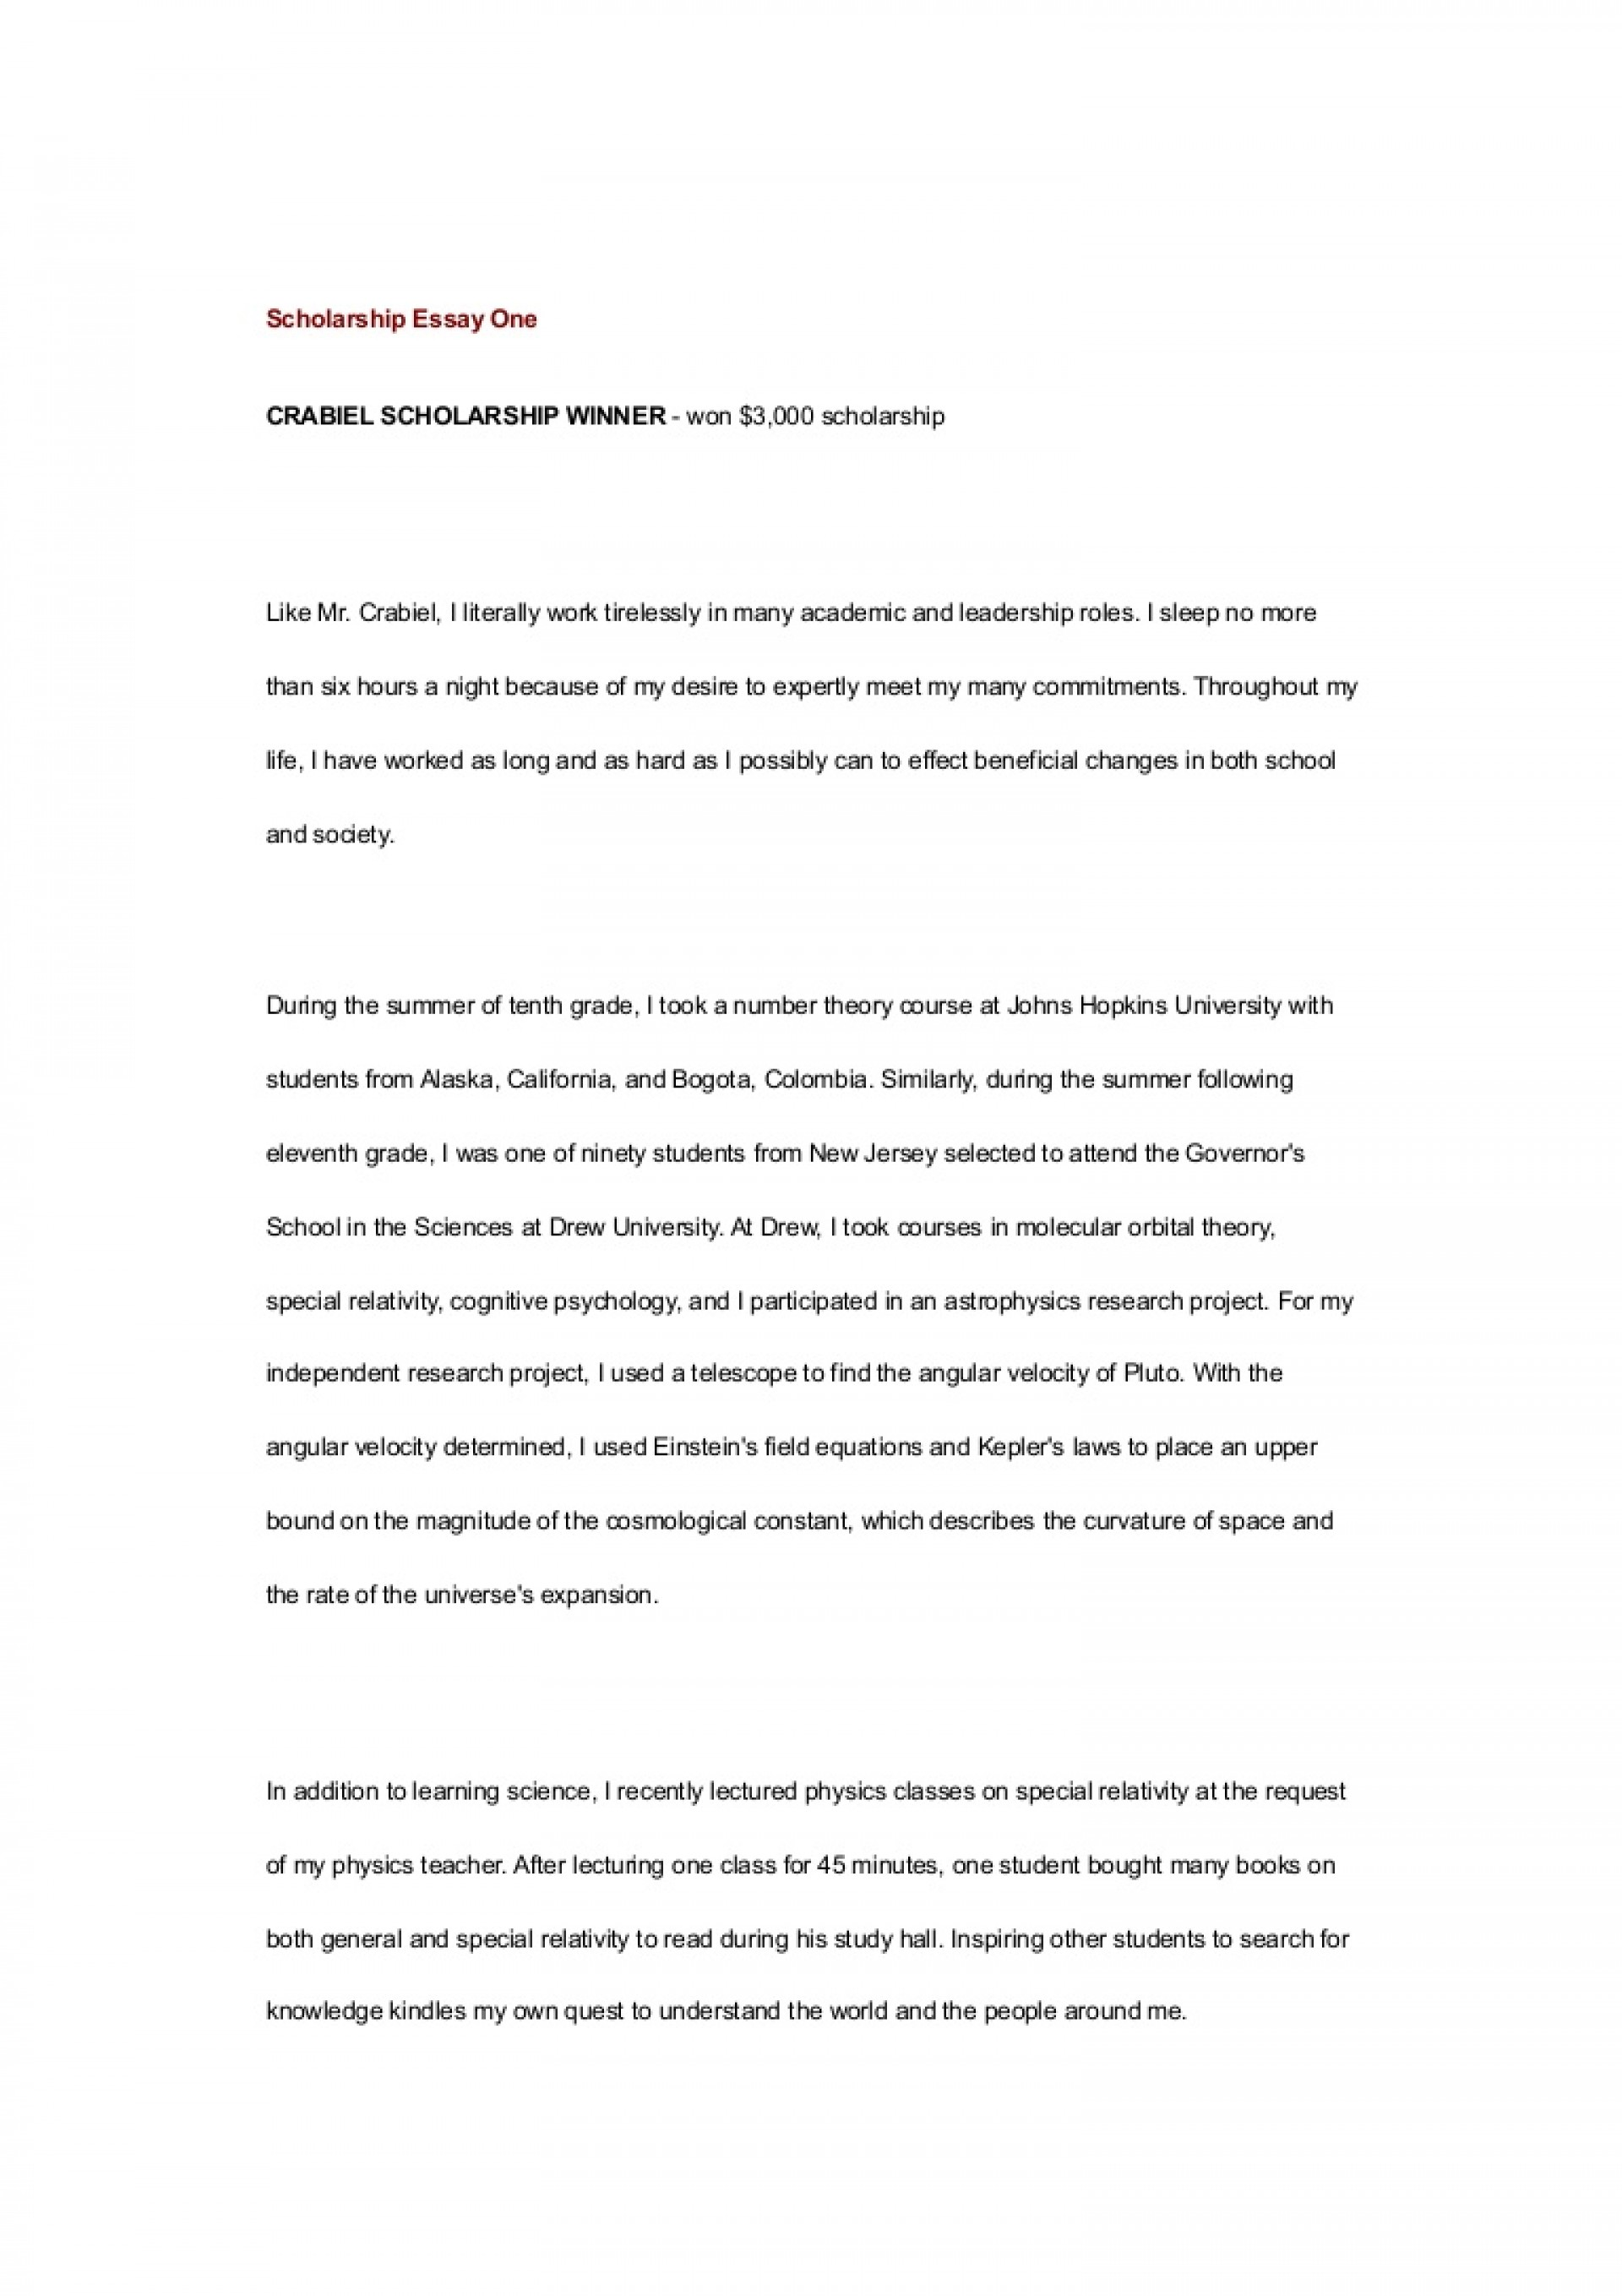 007 Scholarshipessayone Phpapp01 Thumbnail Scholarship Essays About Career Goals Imposing Essay Examples Pdf 1920